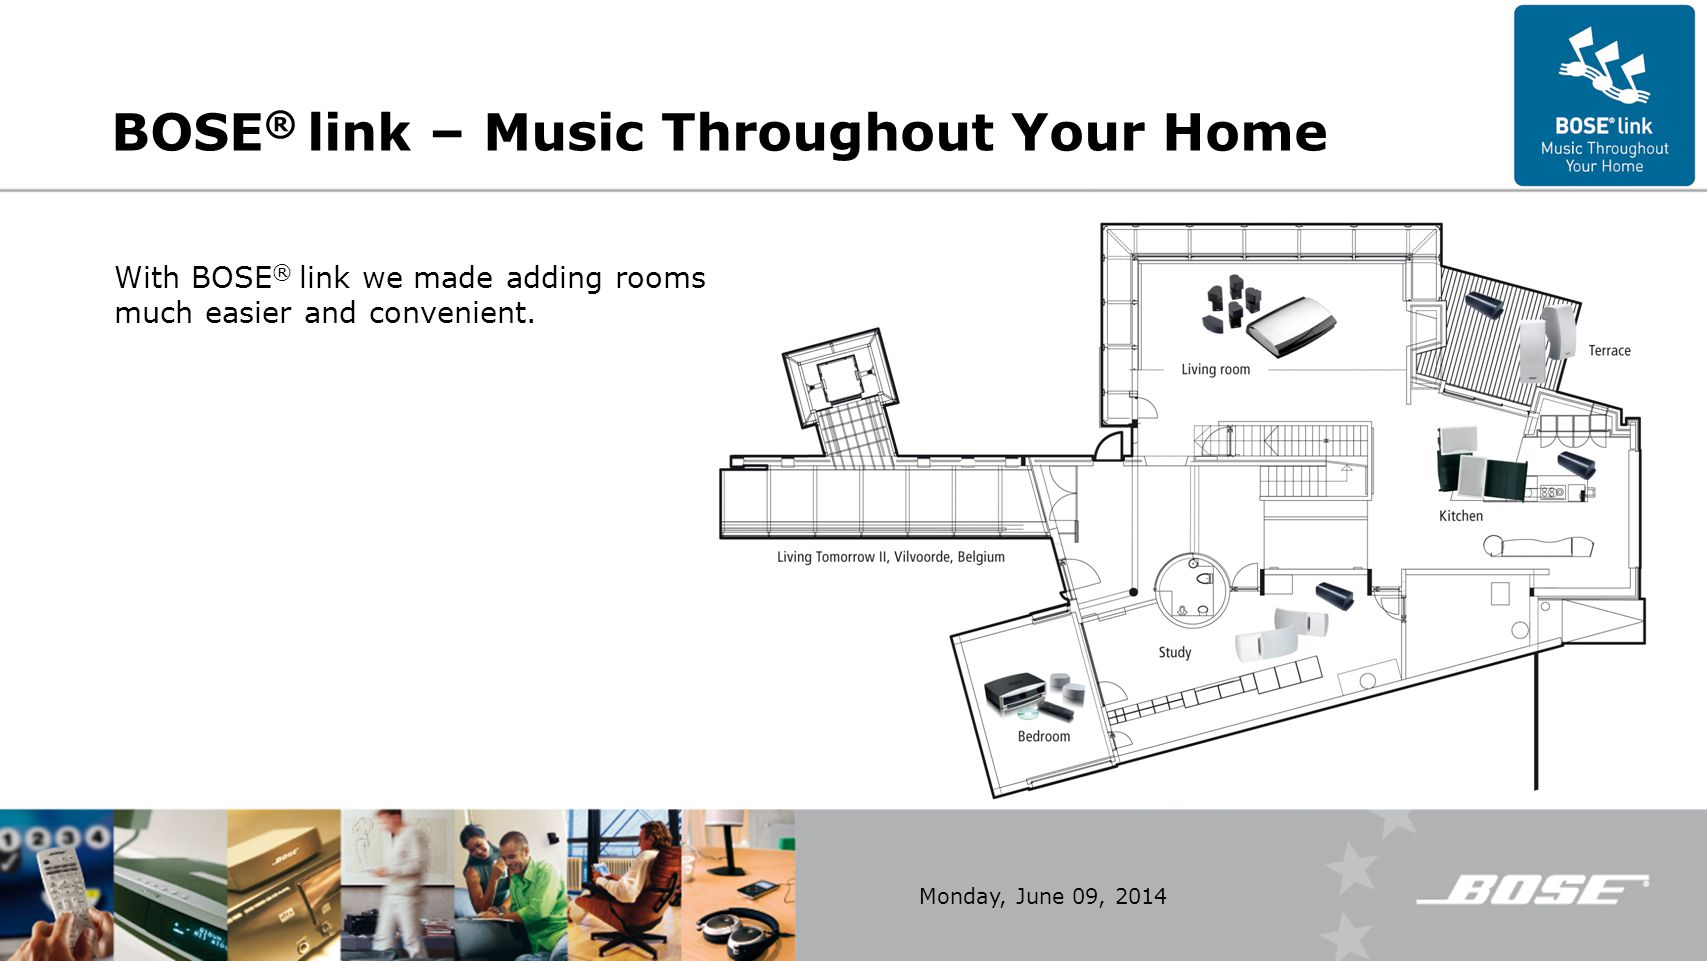 BOSE® link – Music Throughout Your Home